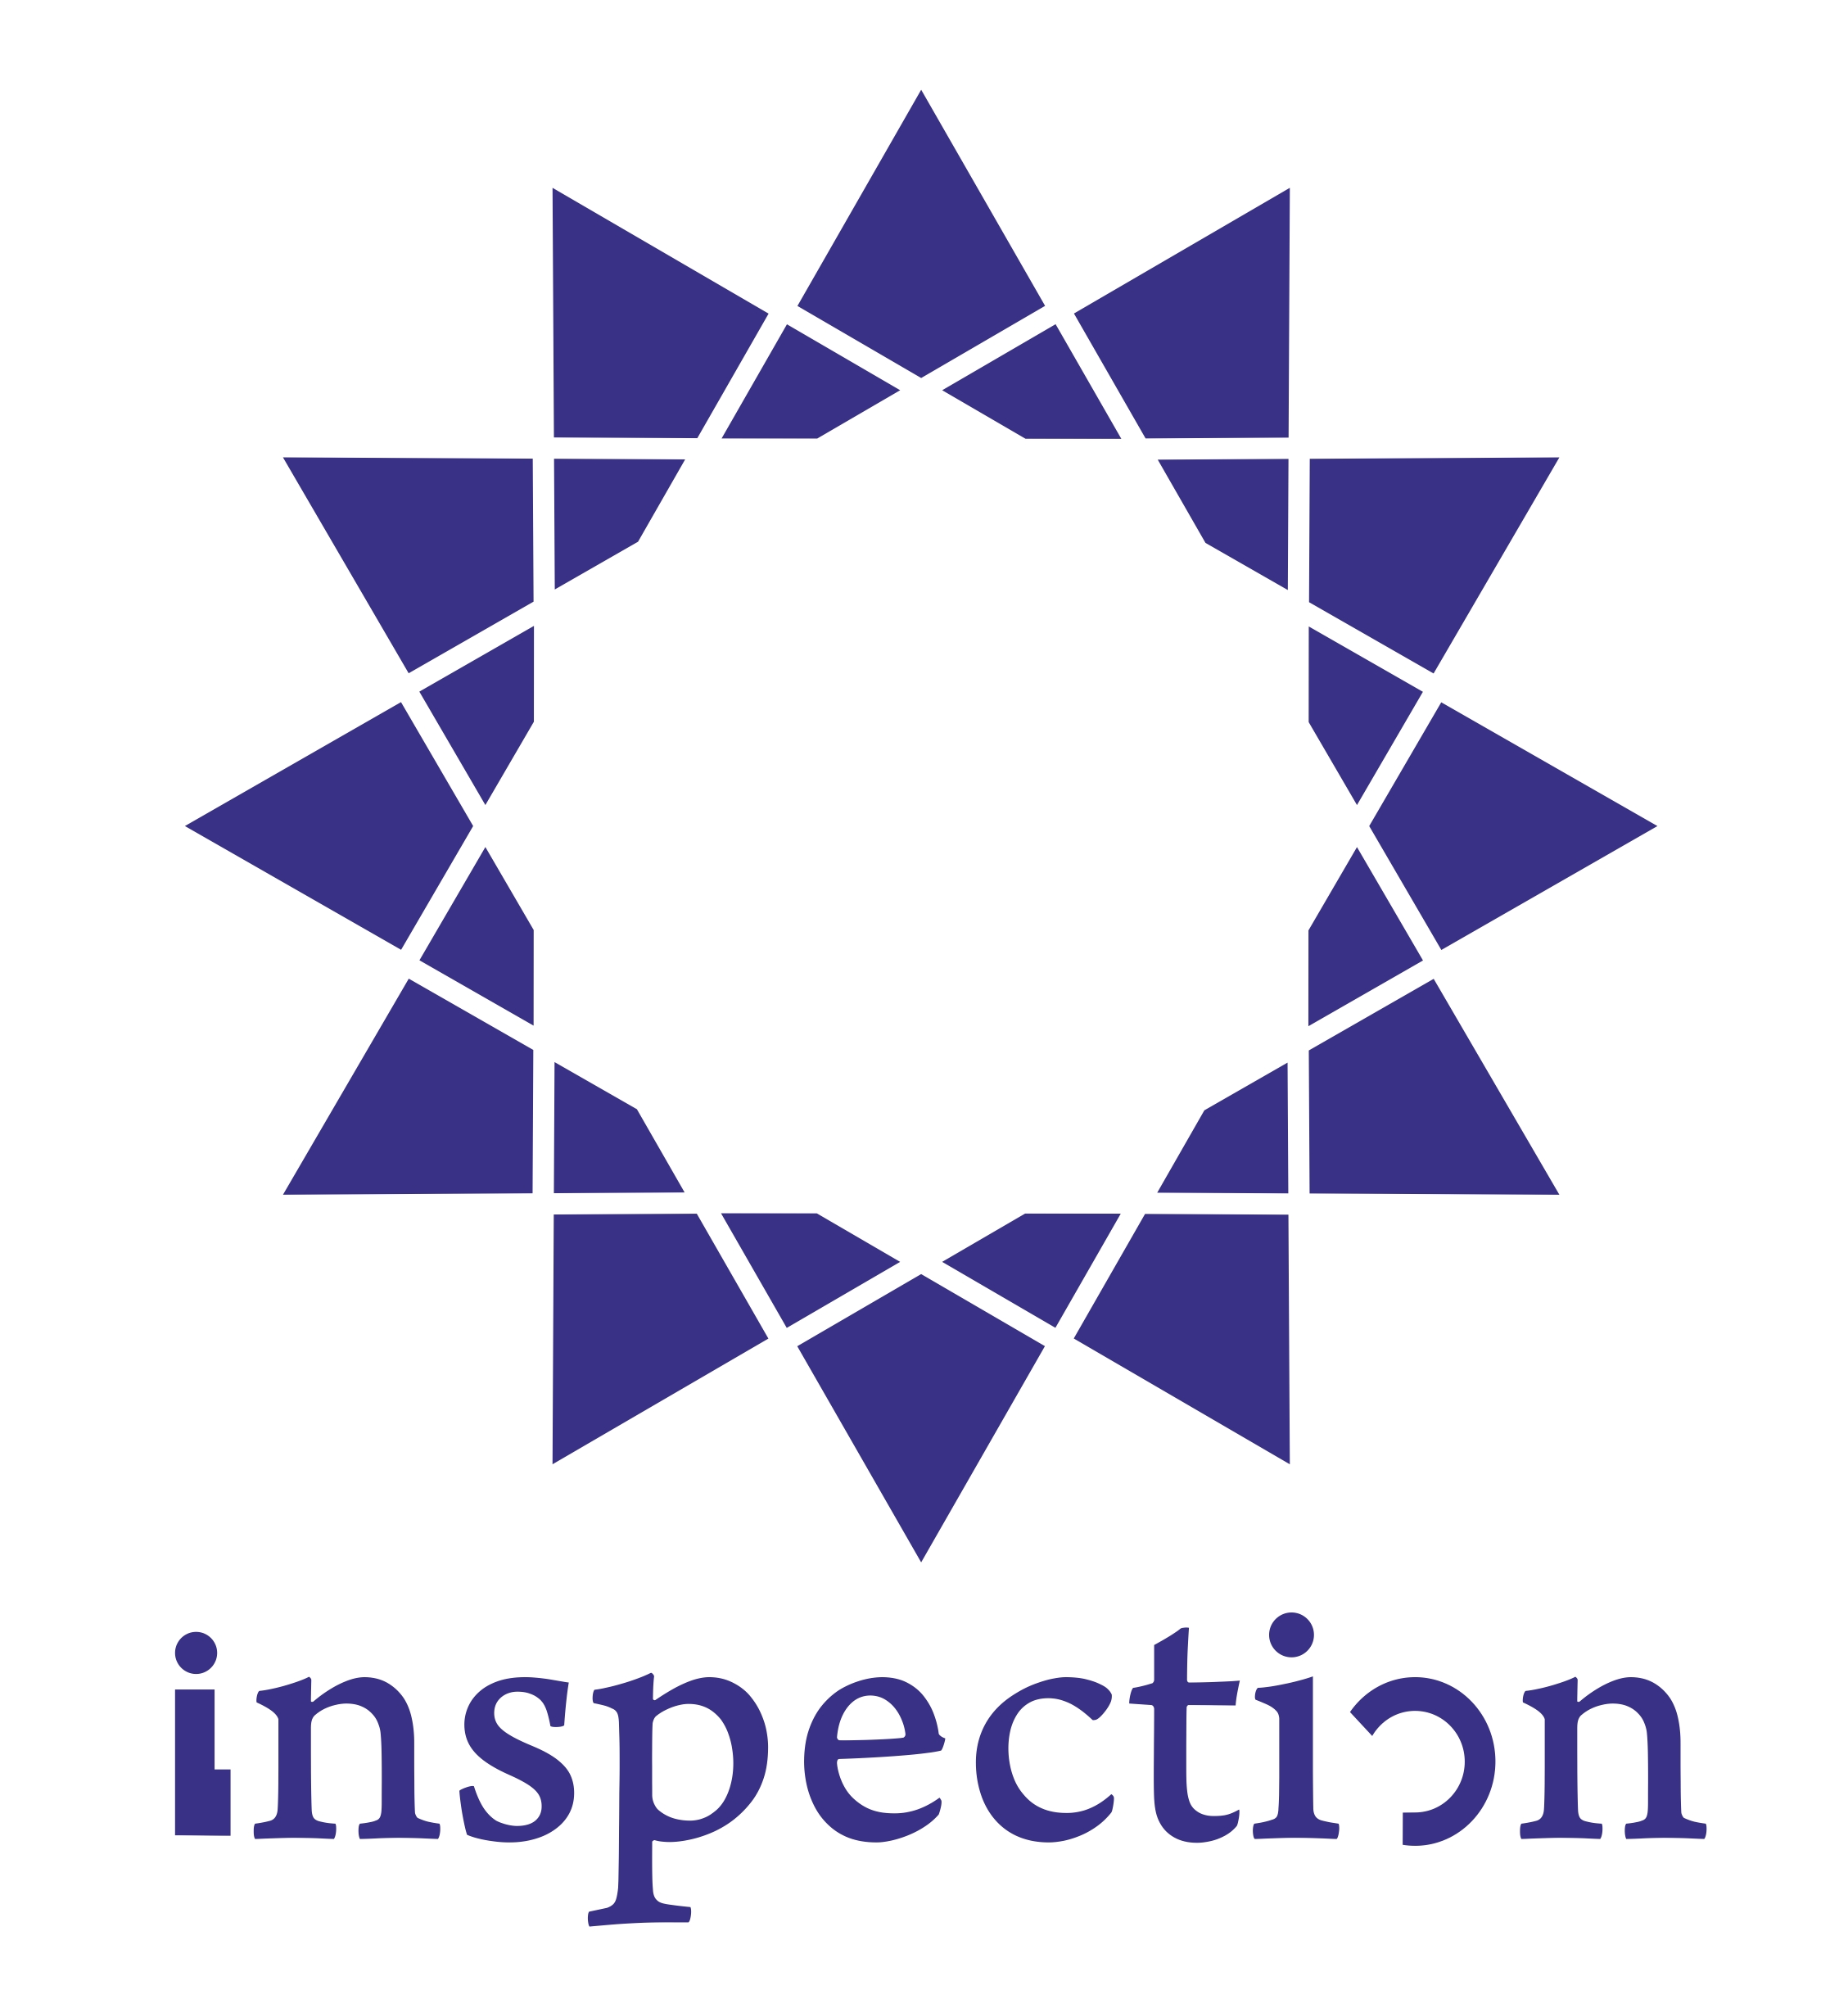 Hd Background Transparent Inspection Png image #28260